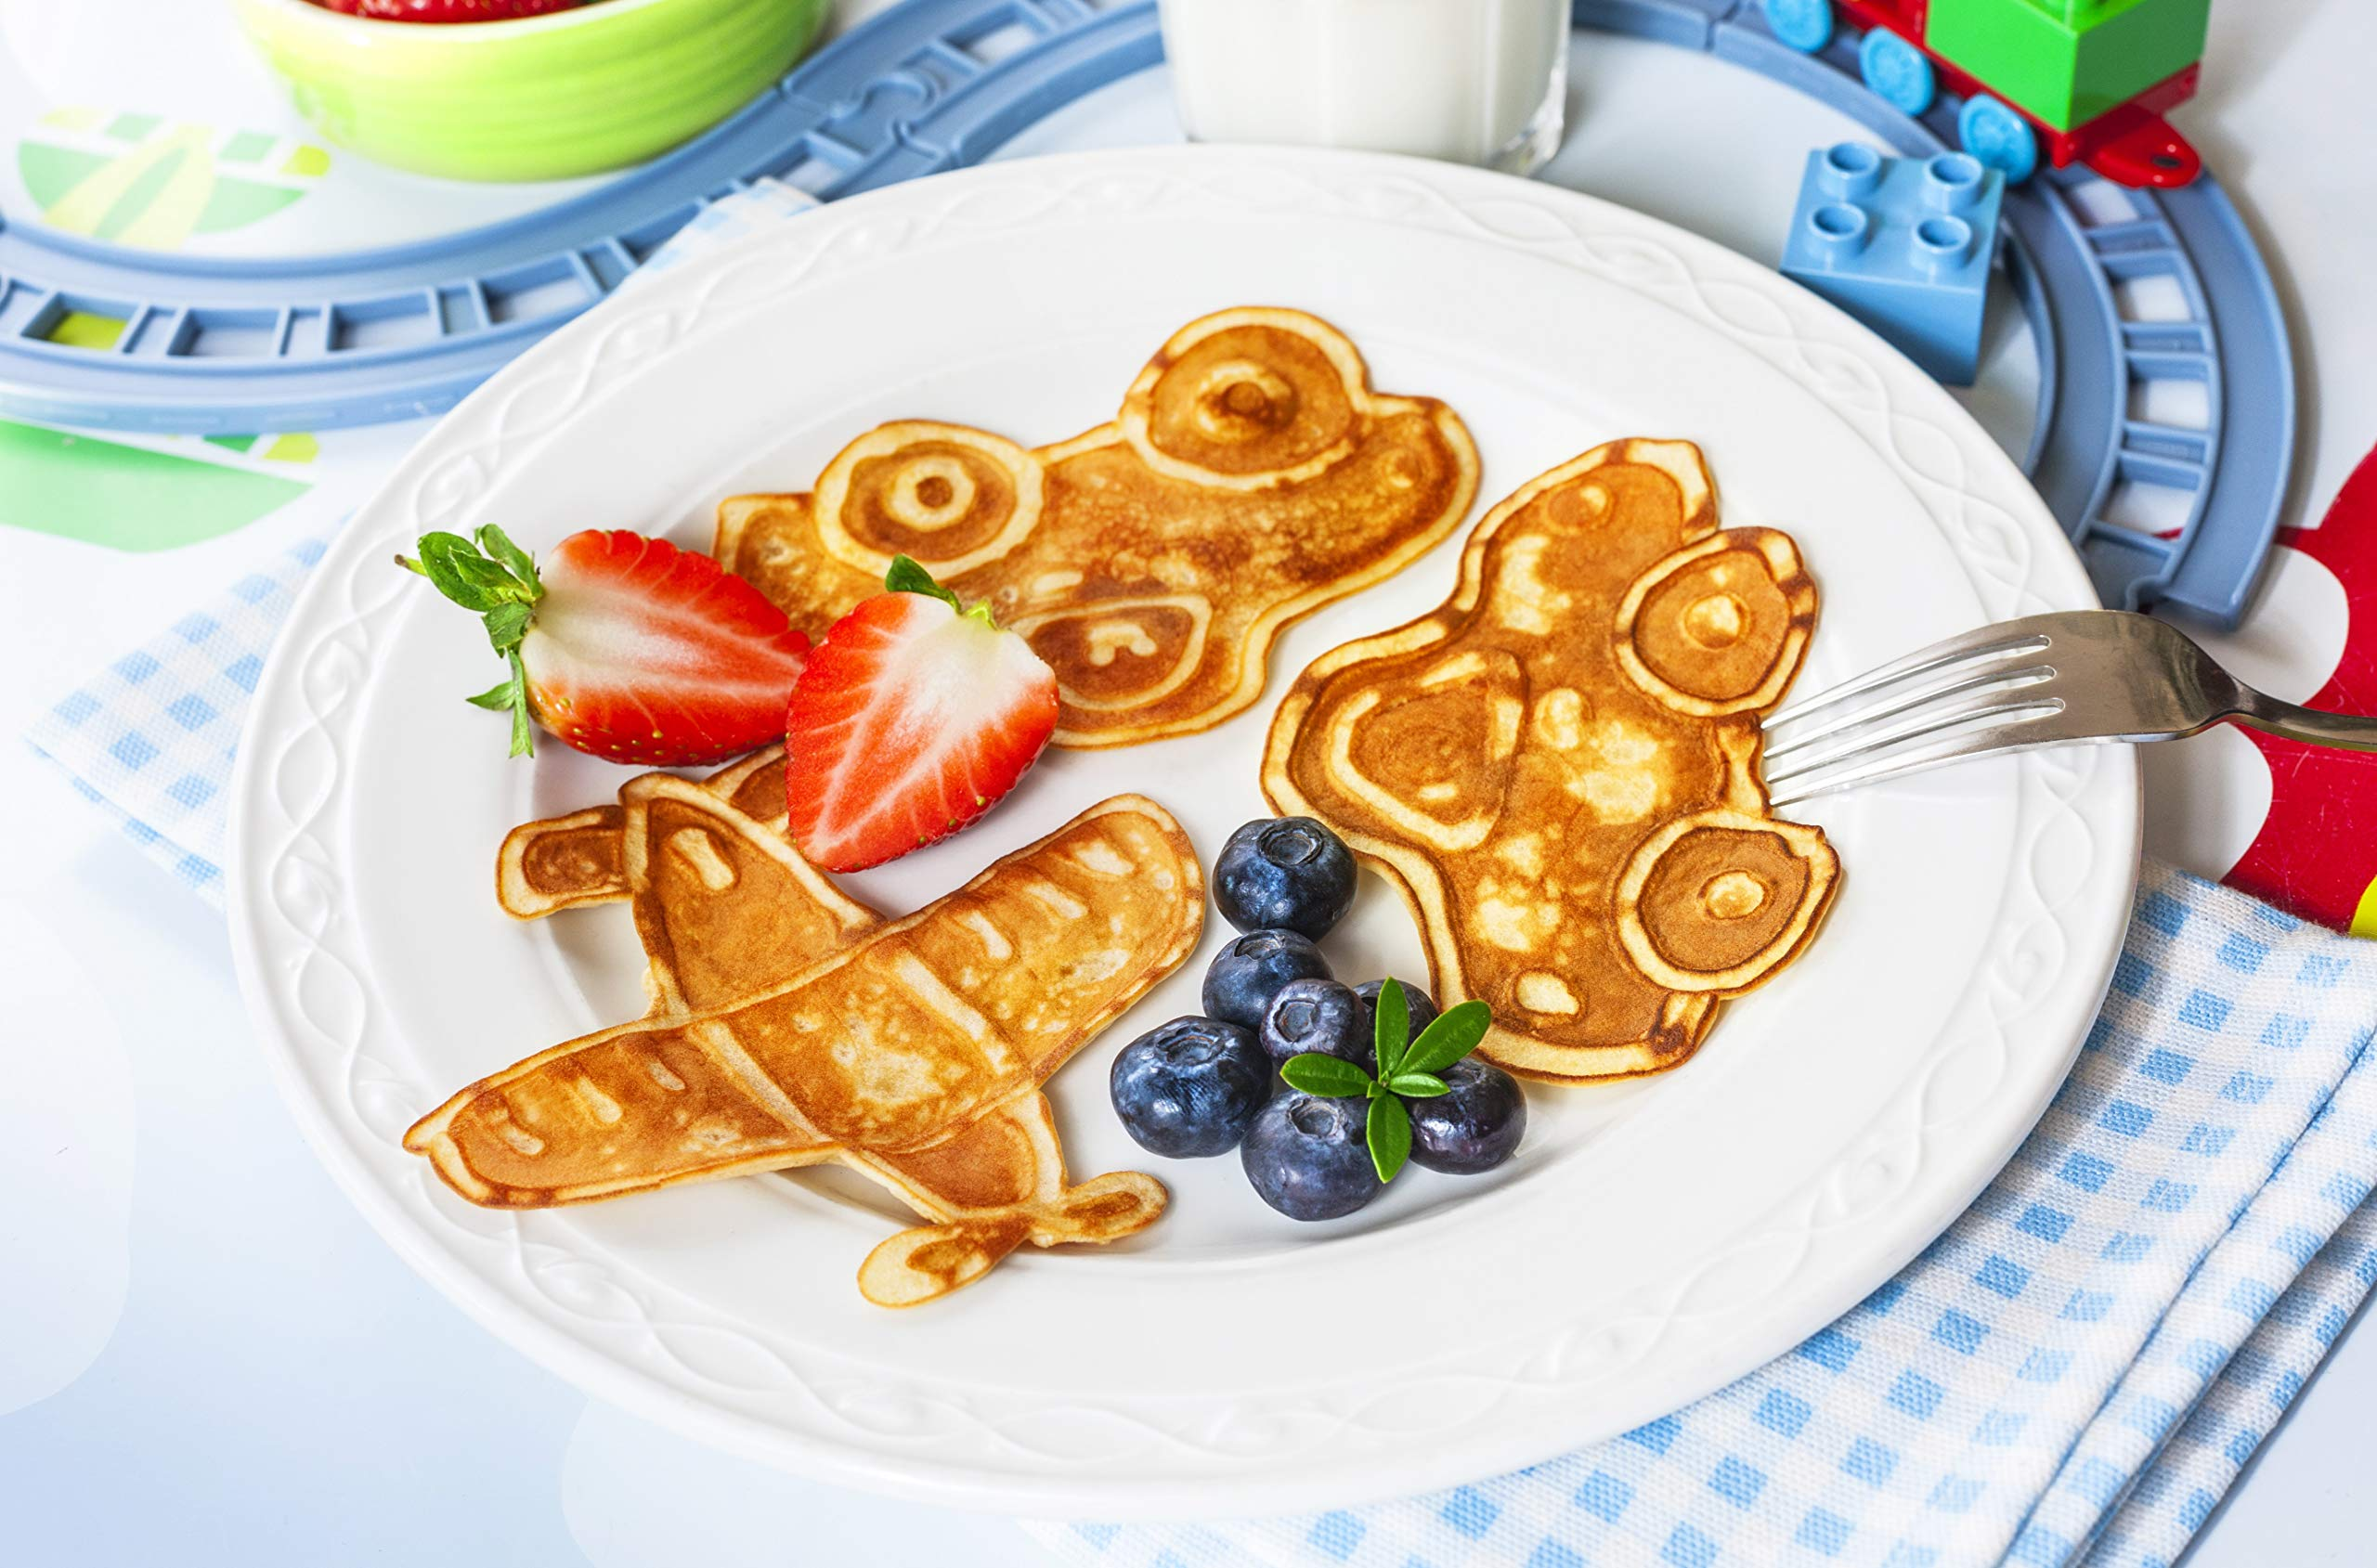 Pancake Party! The Ultimate Pancake Art Making Set for Kids - SUMMER SALE! / REG $35.95 Excellent culinary educational gift for children, young bakers, chefs! baking, cooking kit for boys and girls! by Made for Me (Image #9)